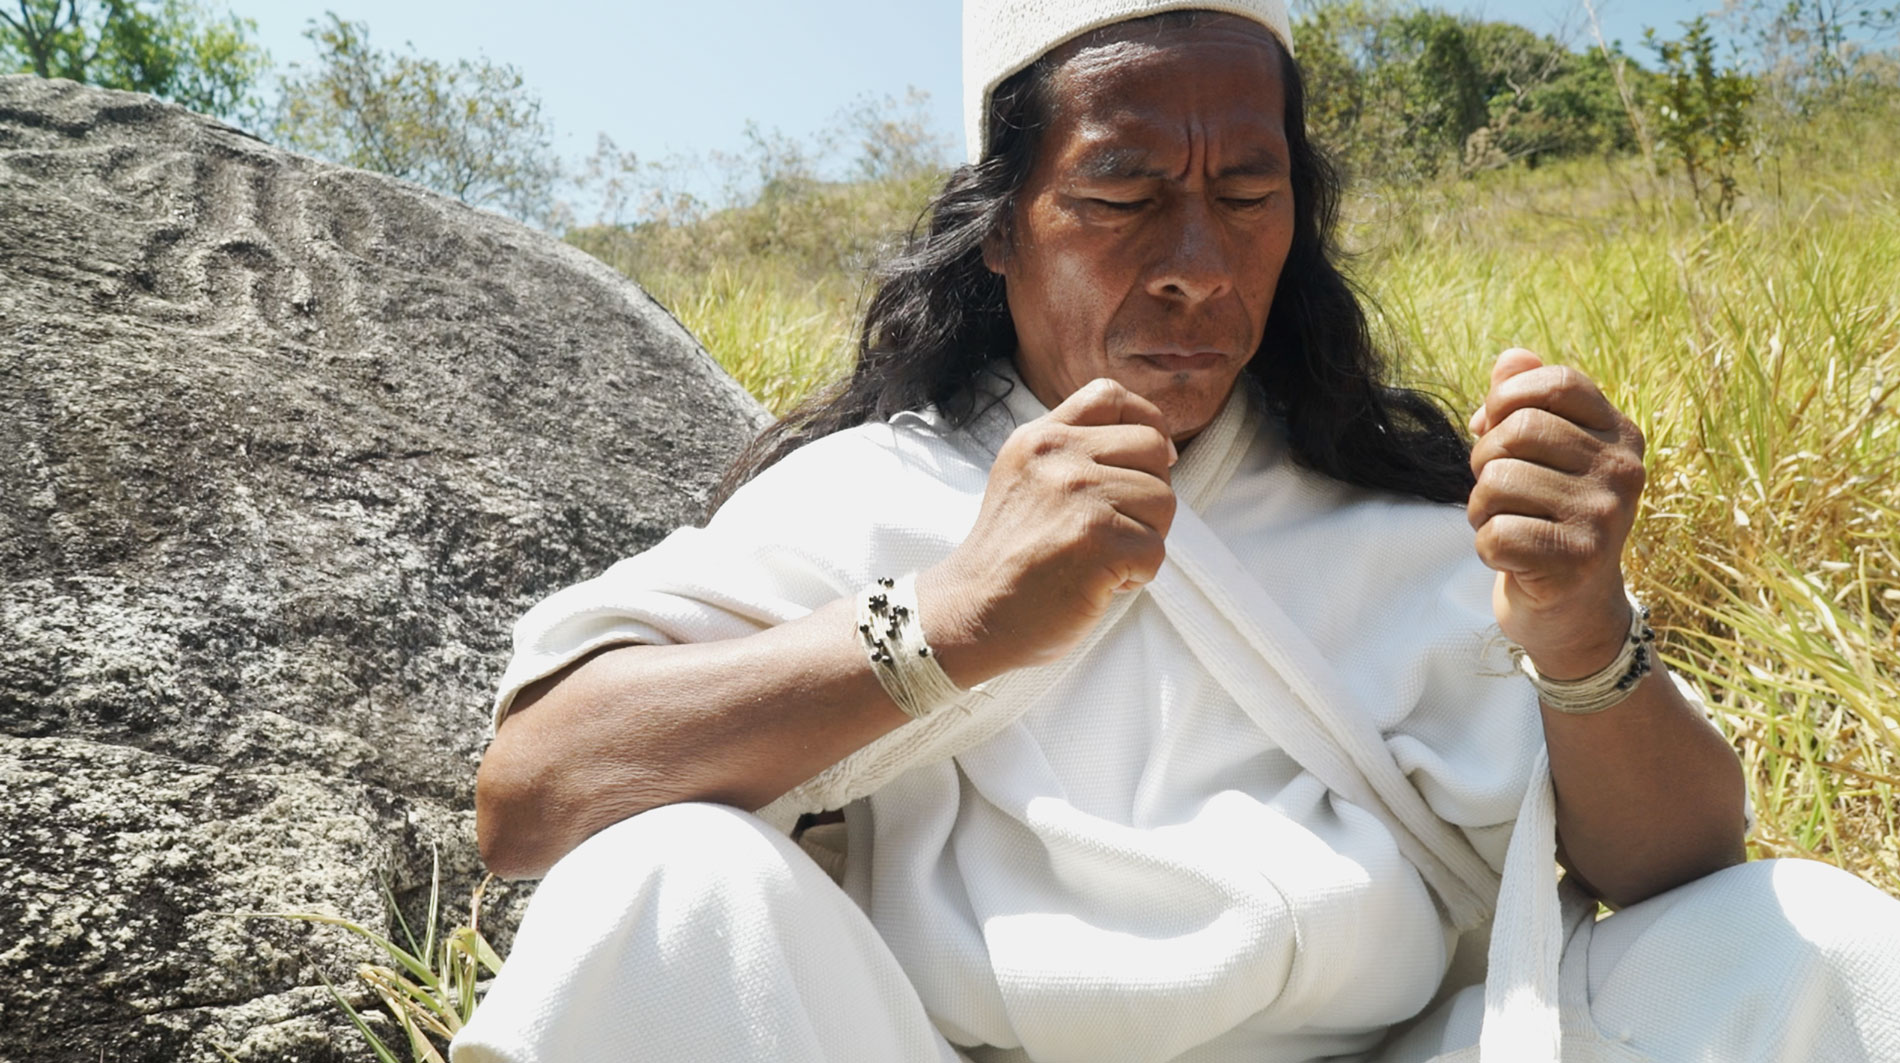 Mamo Camilo meditates over cotton strands before making the offering